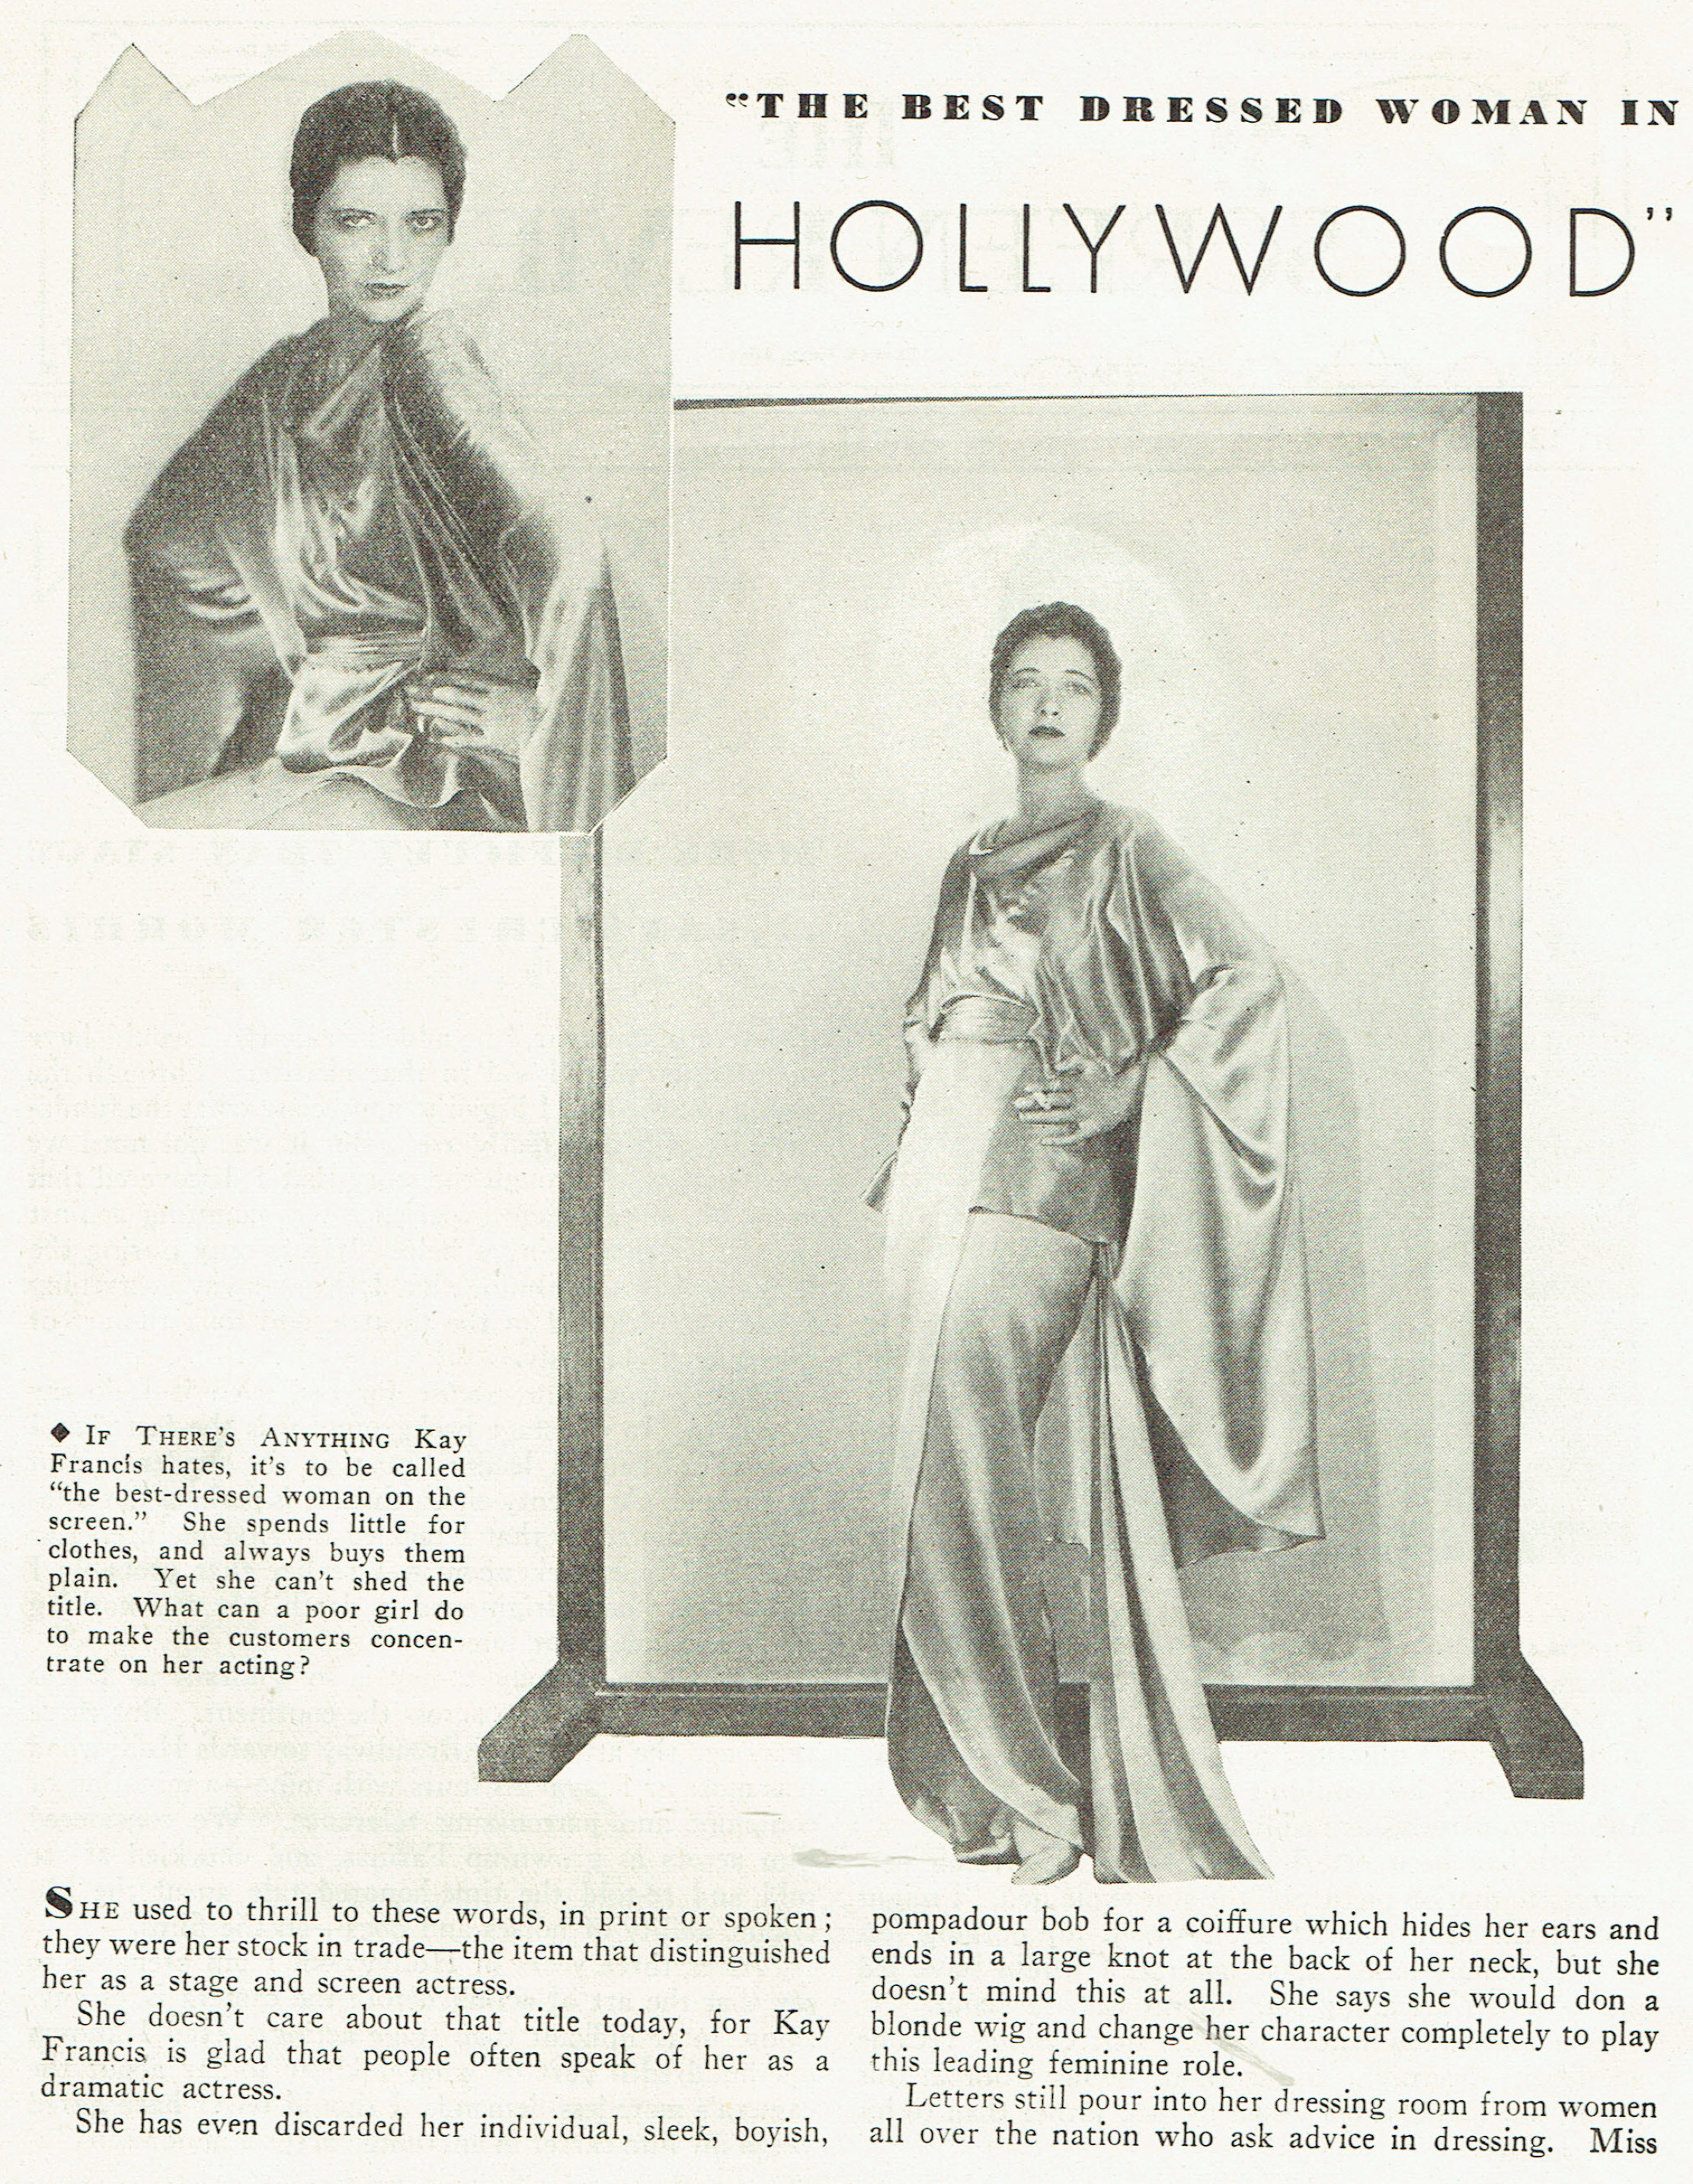 carole lombard publix theatre screen review april 1932da